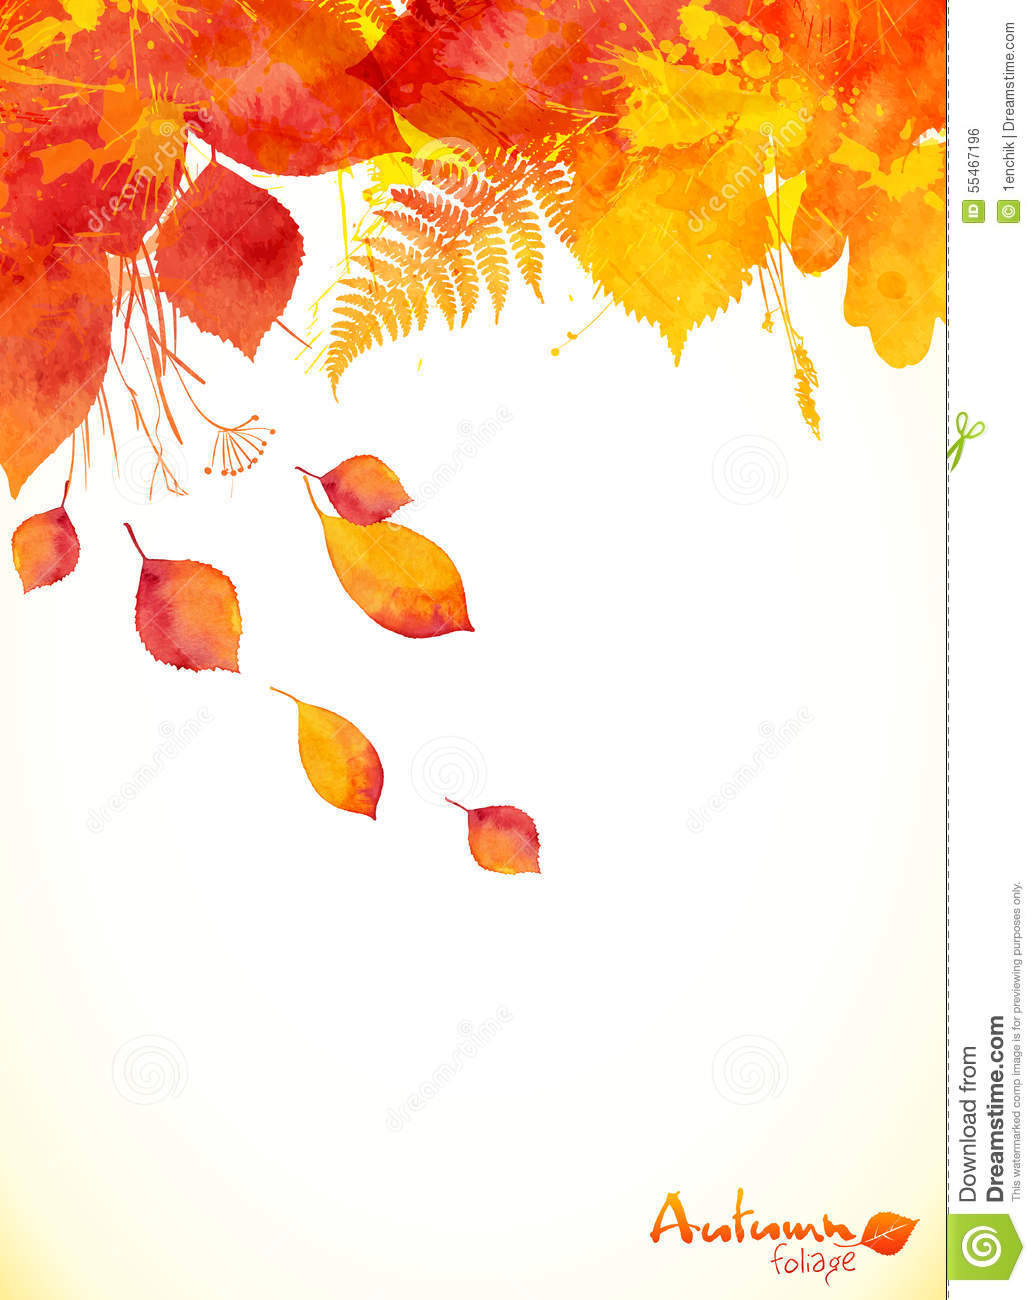 Fall Leaves Wallpaper Border Red Watercolor Autumn Leaves Fall Leaflet Stock Vector